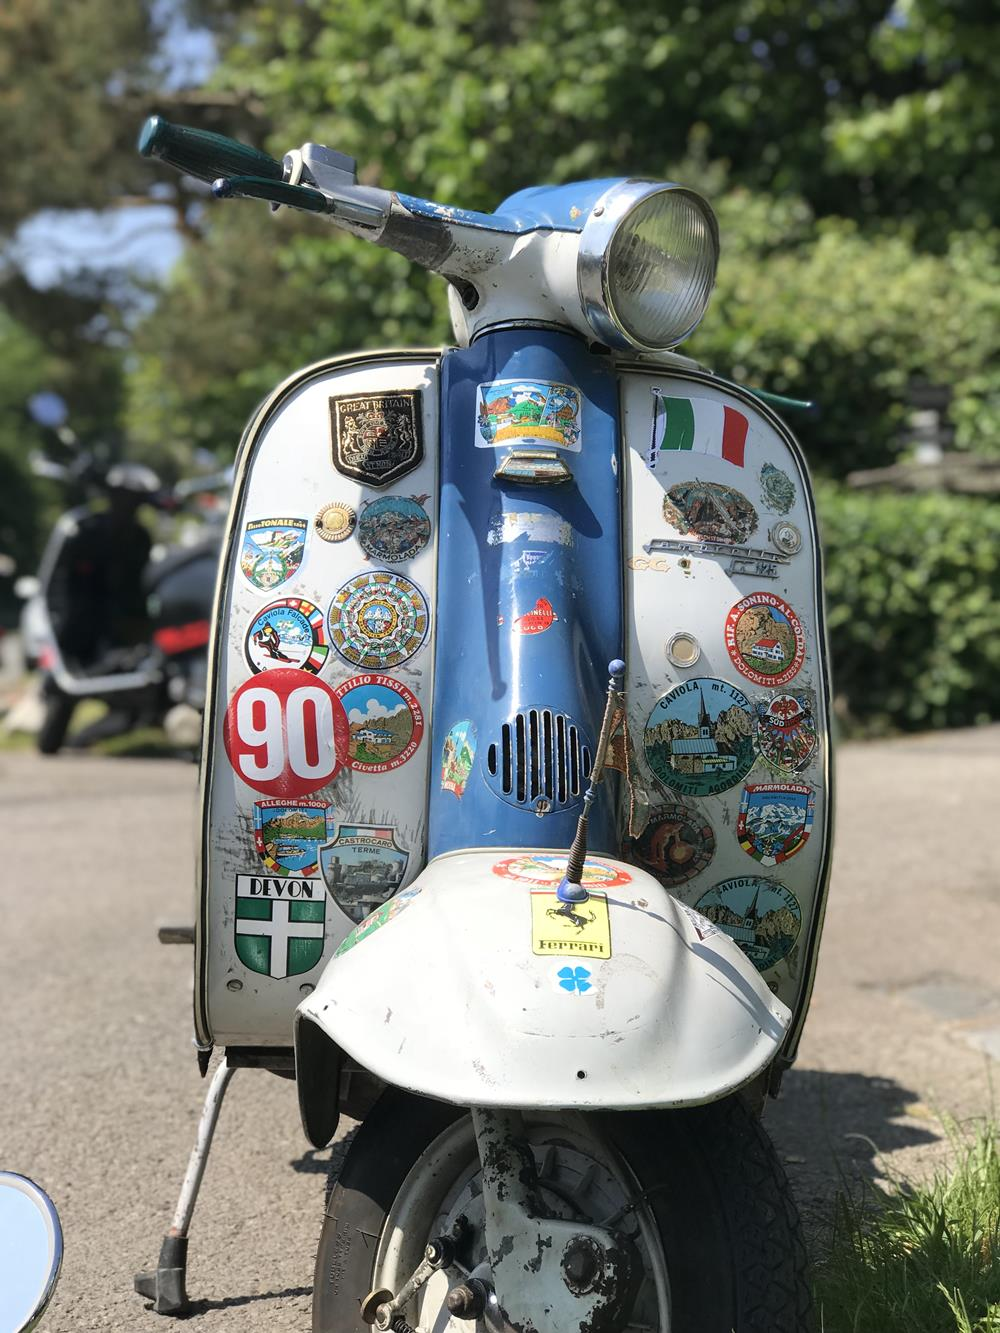 Rusty Lambretta scooter with stickers on the front fairing and a blue horncasting